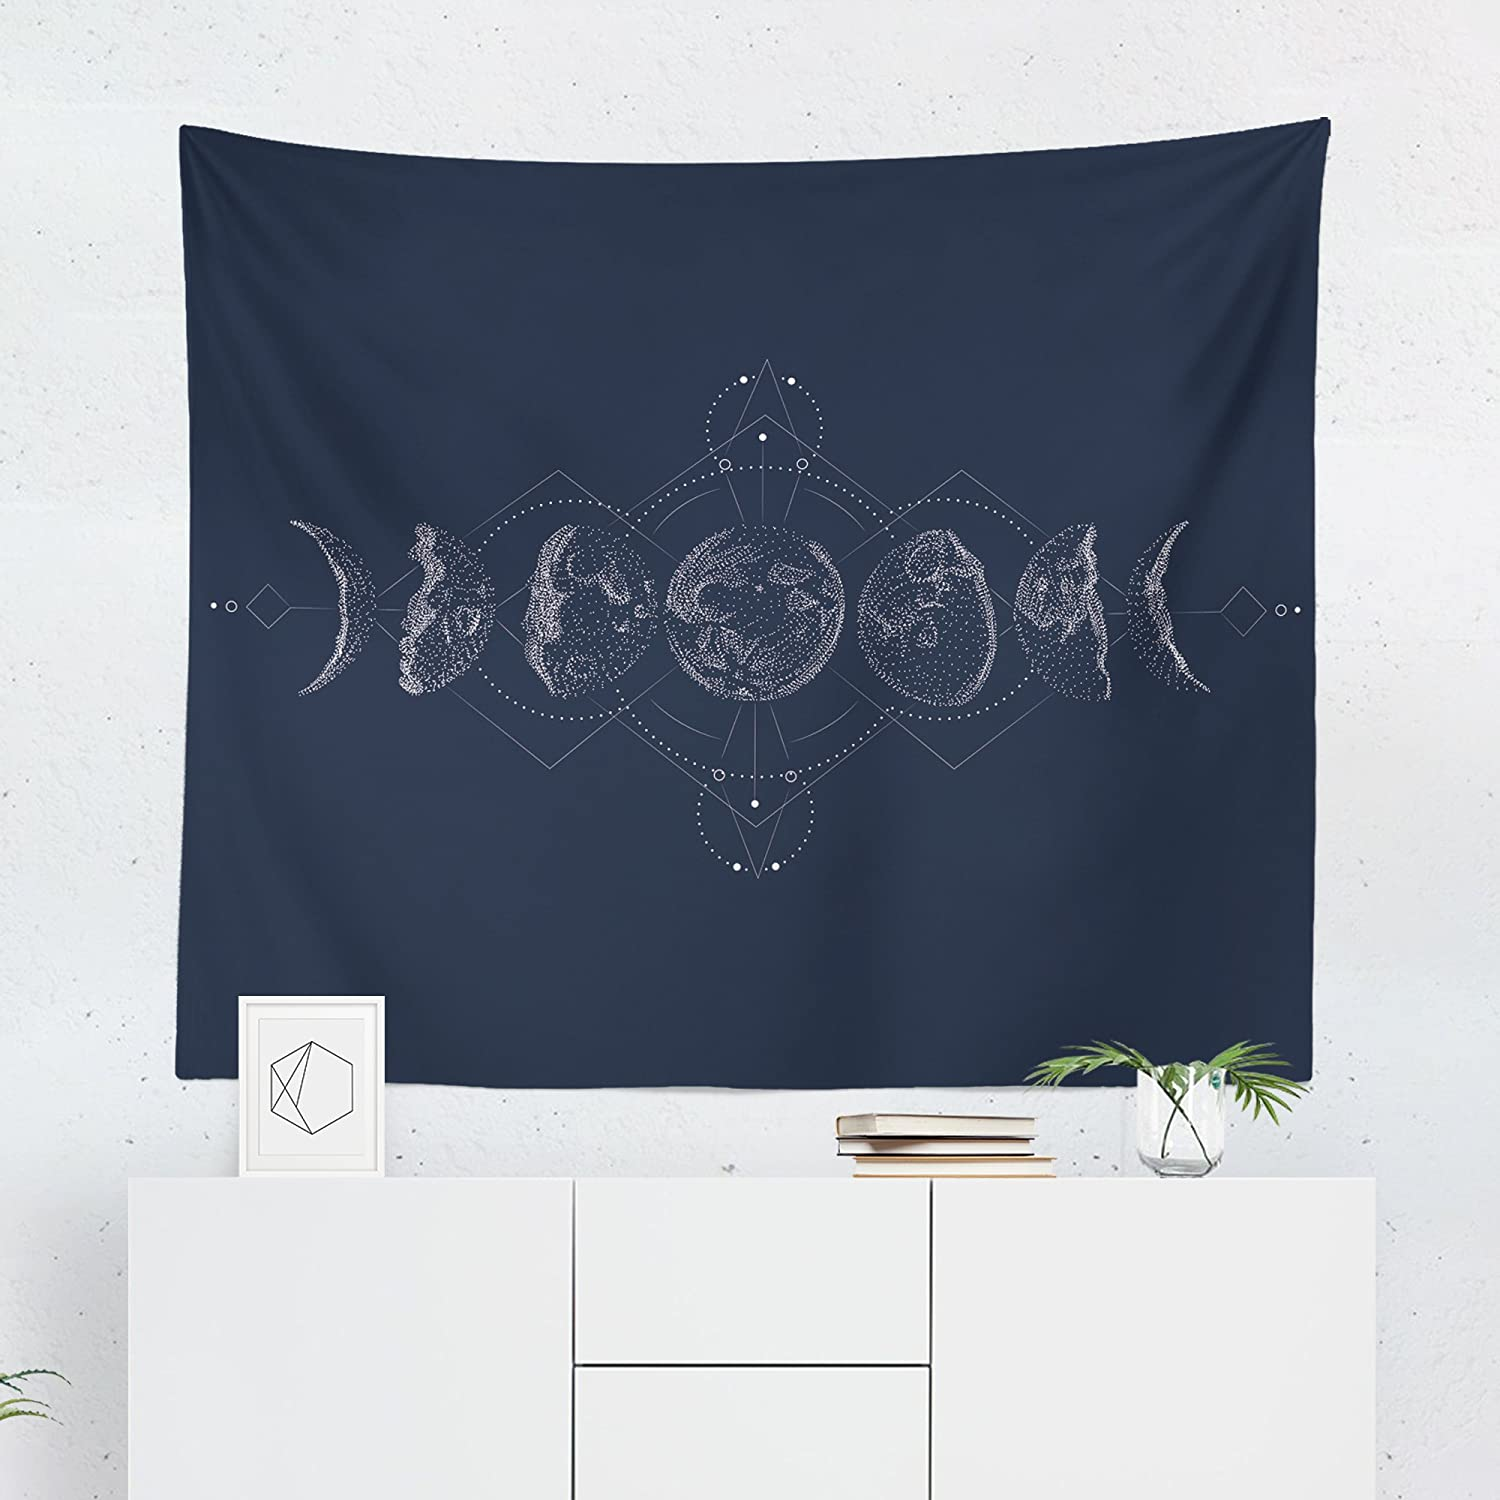 Moon Phases Tapestry - Stars Geometric Space Symbol Wall Tapestries Hanging Décor Bedroom Dorm College Living Room Home Art Print Decoration Decorative - Printed in the USA - Small Medium Large